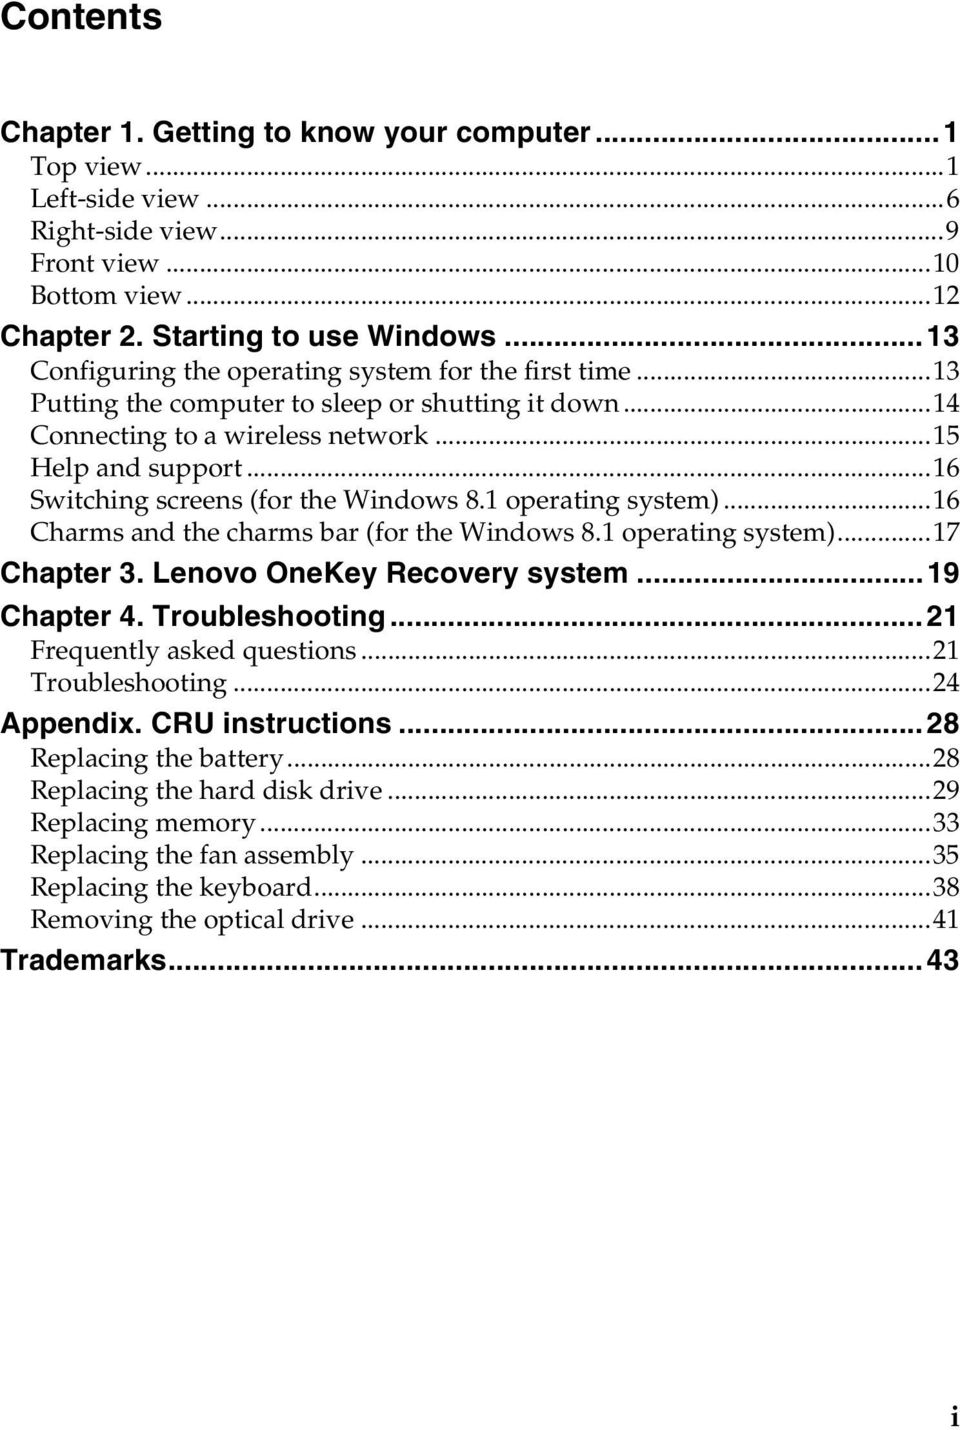 ..16 Switching screens (for the Windows 8.1 operating system)...16 Charms and the charms bar (for the Windows 8.1 operating system)...17 Chapter 3. Lenovo OneKey Recovery system...19 Chapter 4.